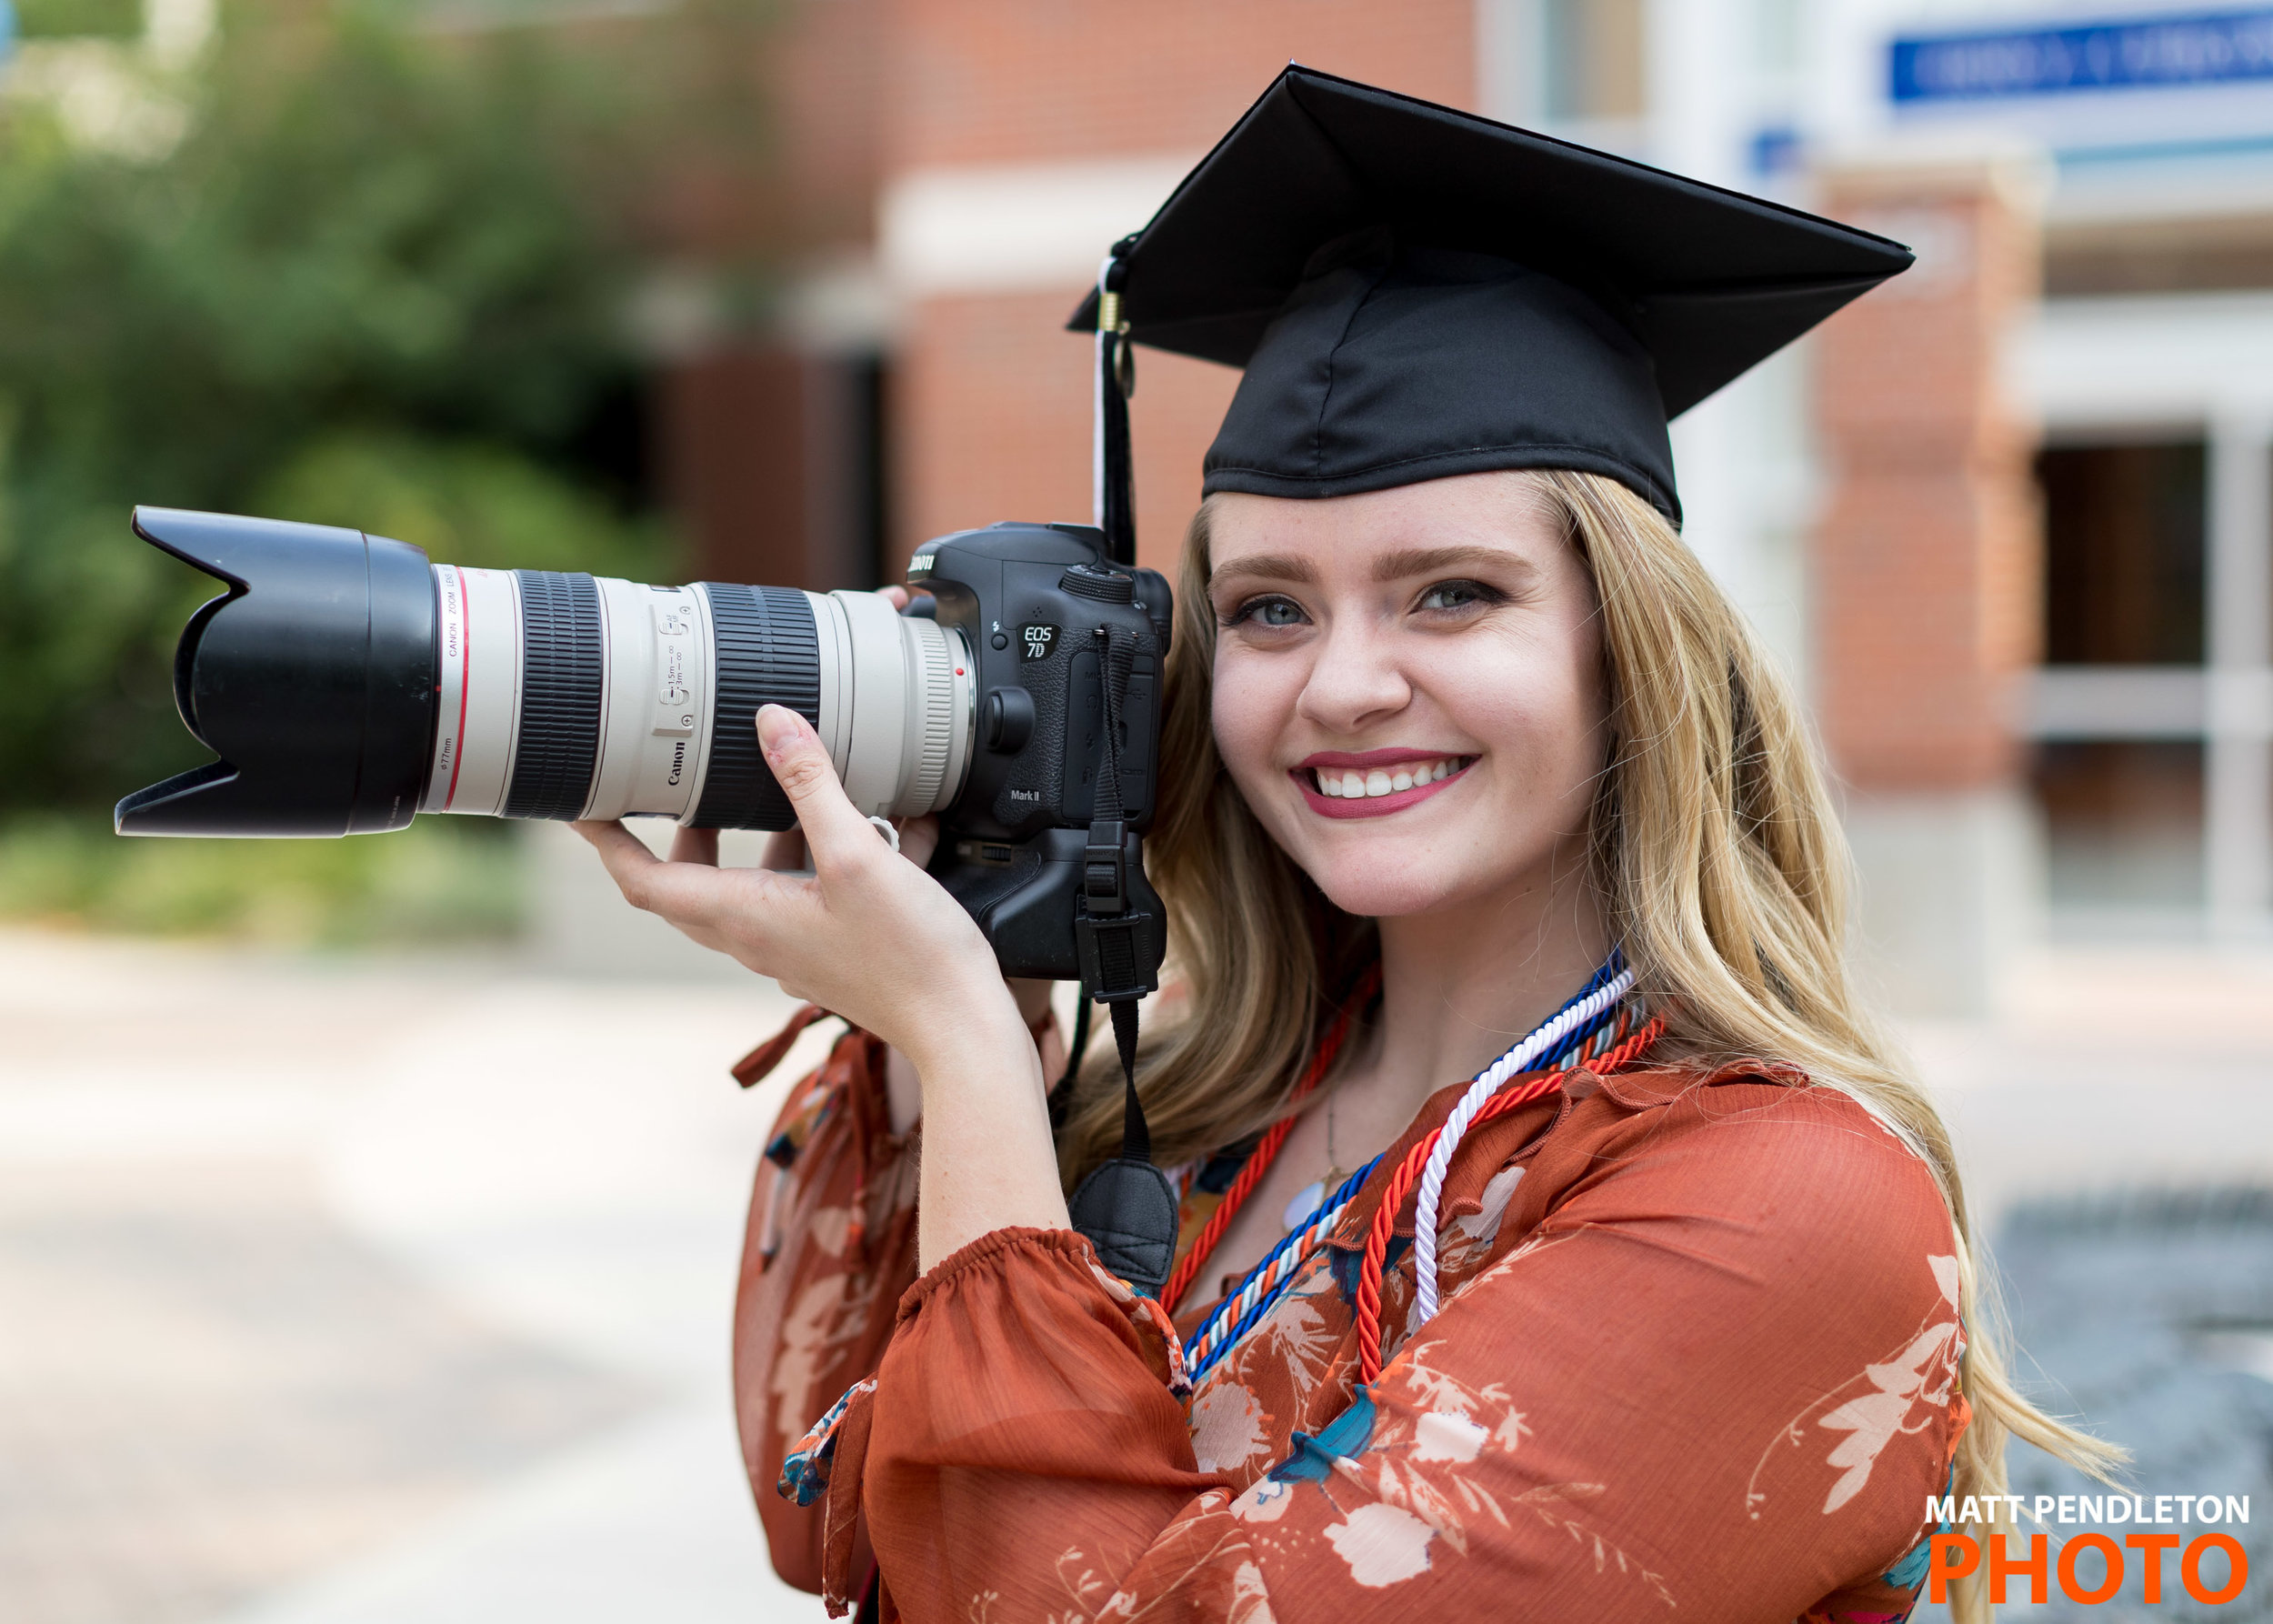 Grad photo session featuring Courtney Culbreath on Thursday, April 27, 2017 at Ben Hill Griffin Stadium in Gainesville, FL / Photo by Matt Pendleton for Matt Pendleton Photography (mattpendleton.com)